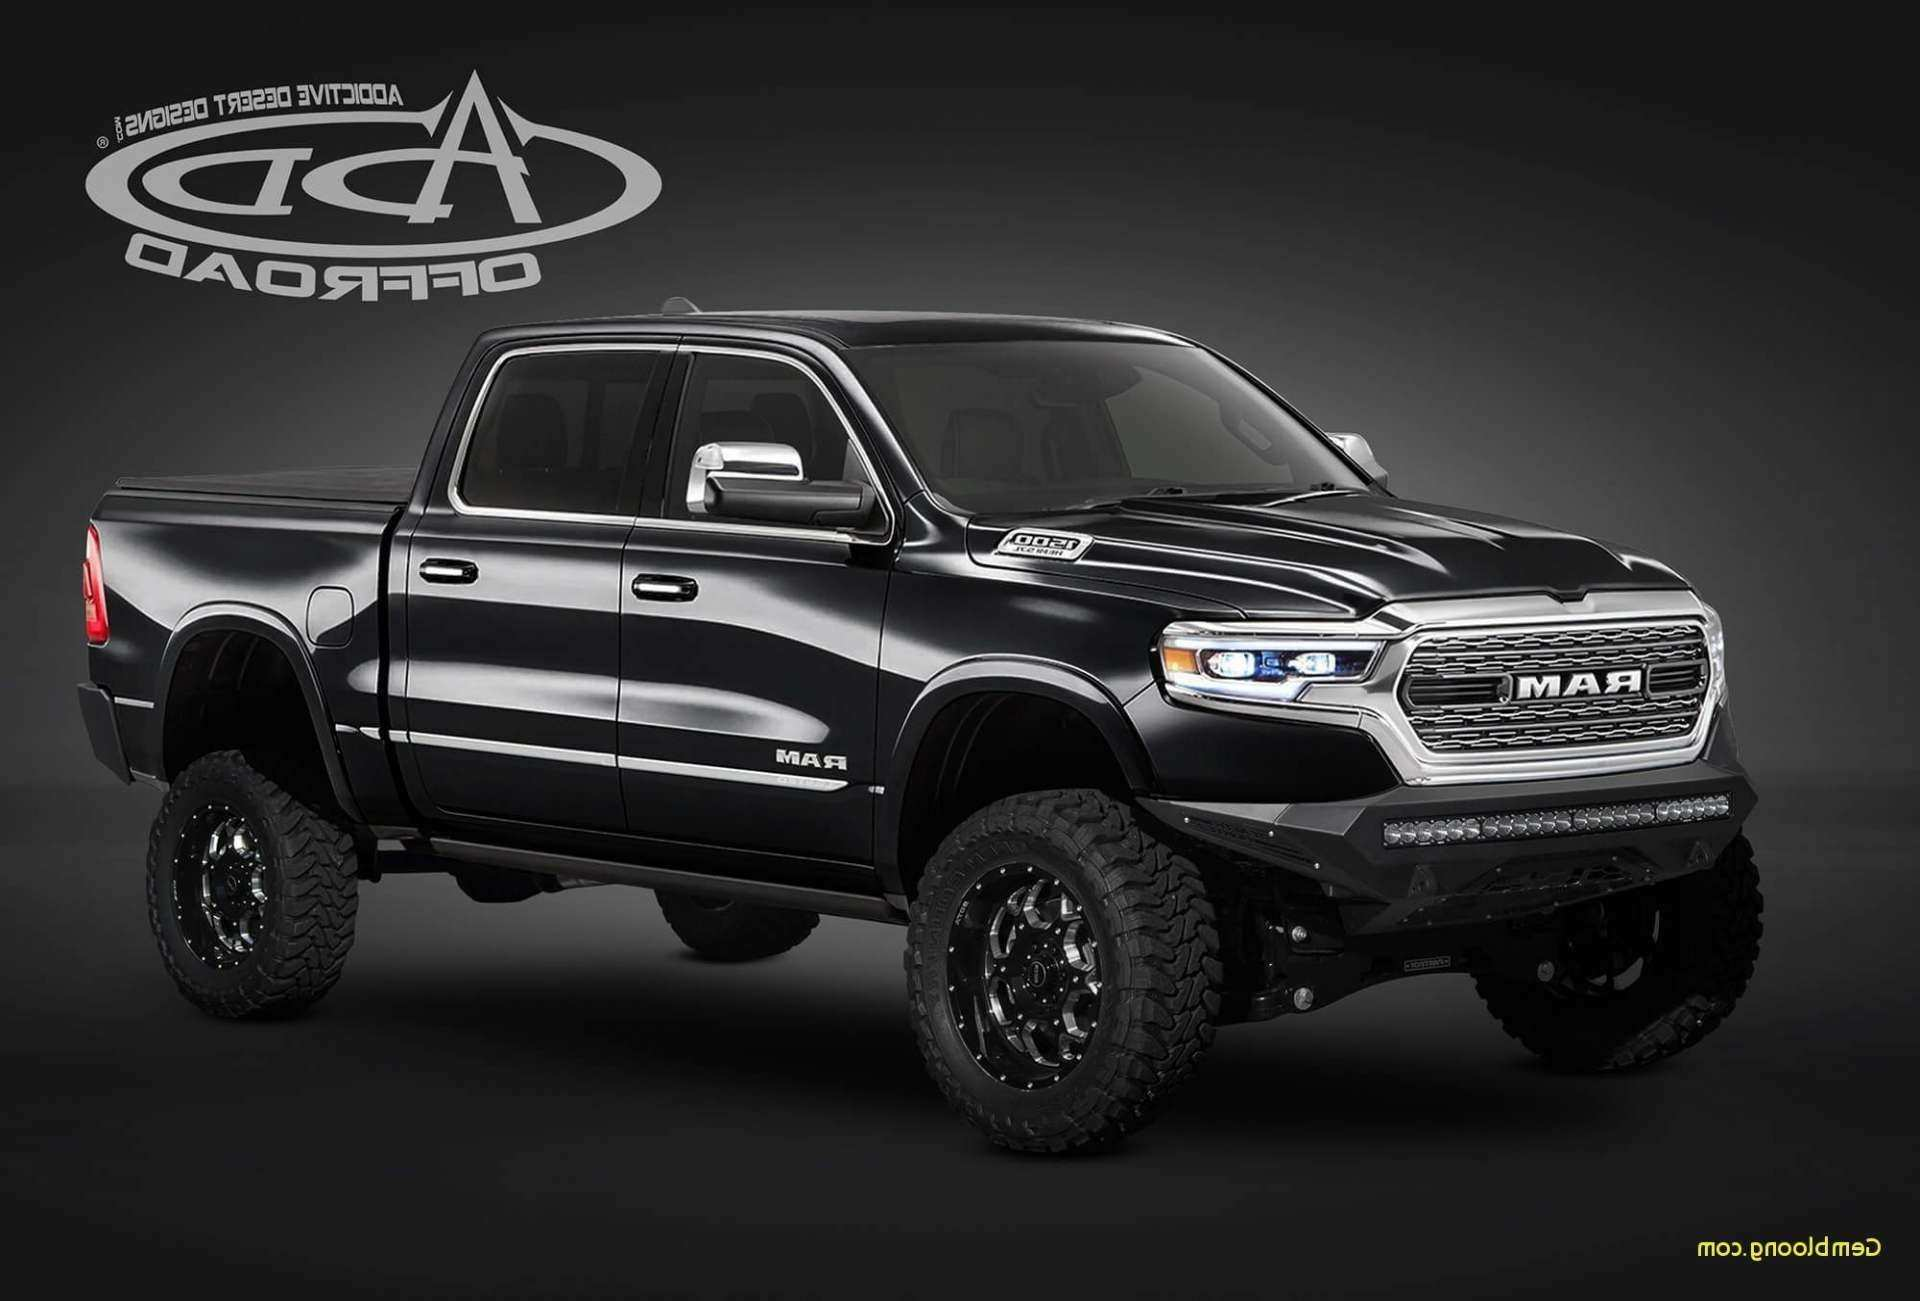 30 The Best 2020 Dodge Ram 3500 Price Design And Review